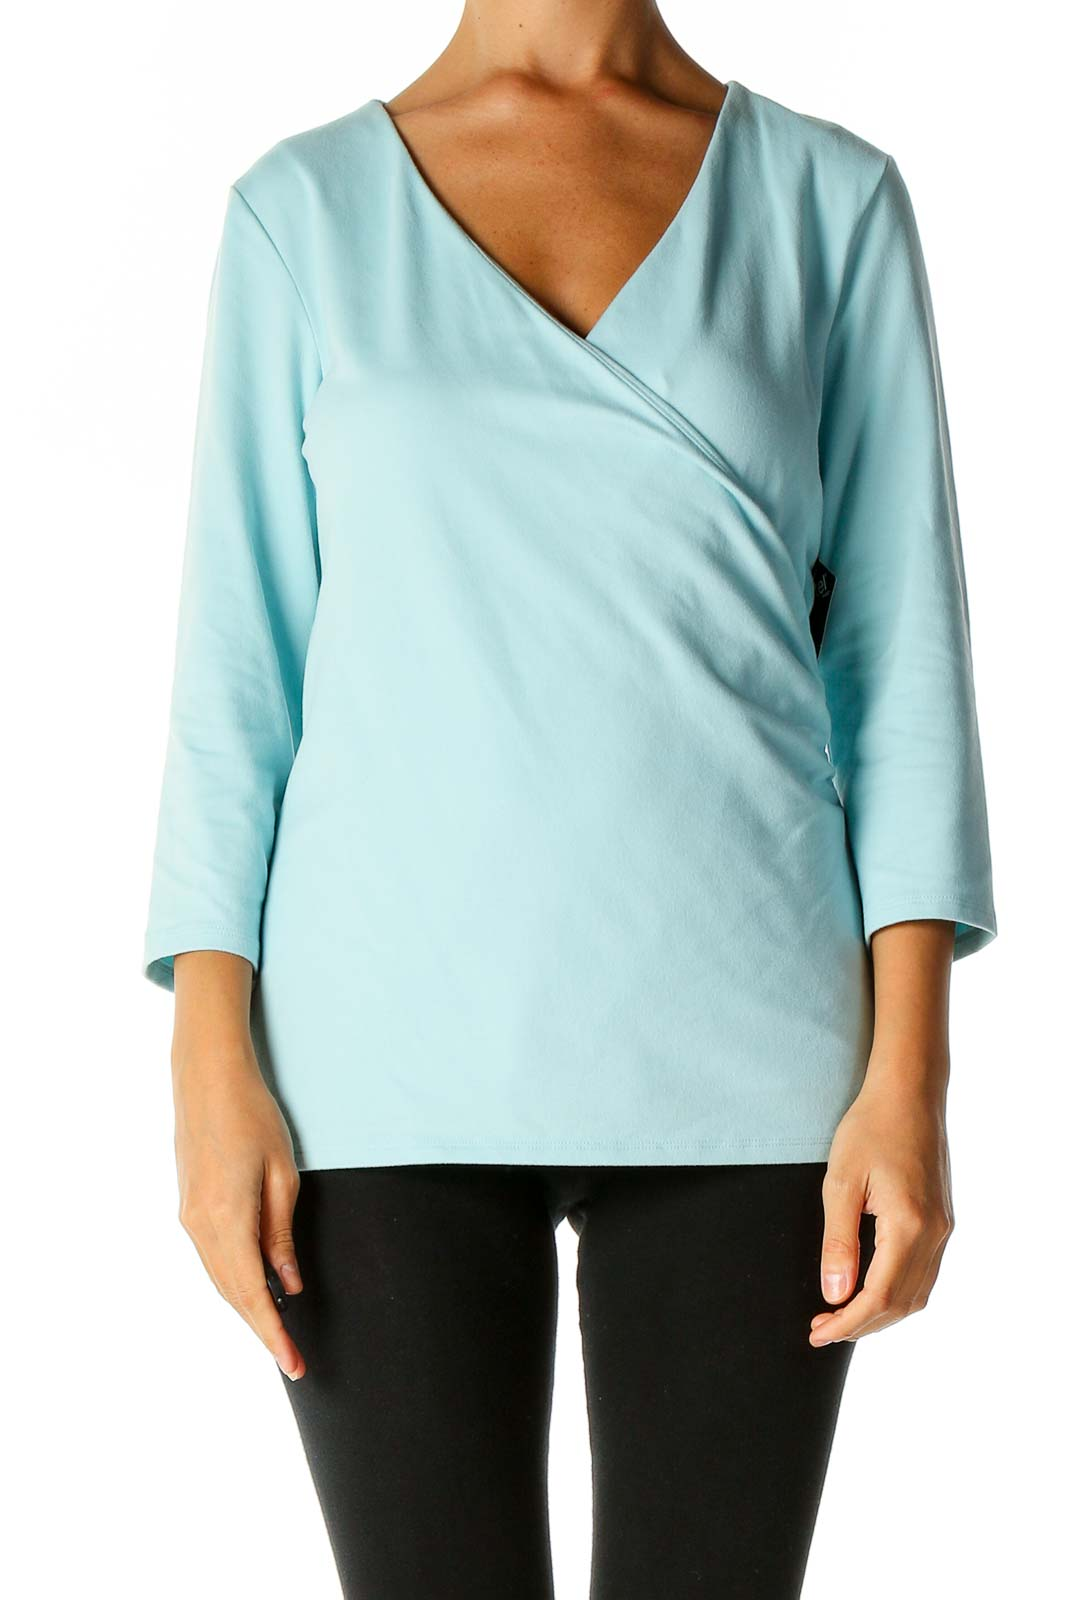 Blue Solid Casual Blouse Front